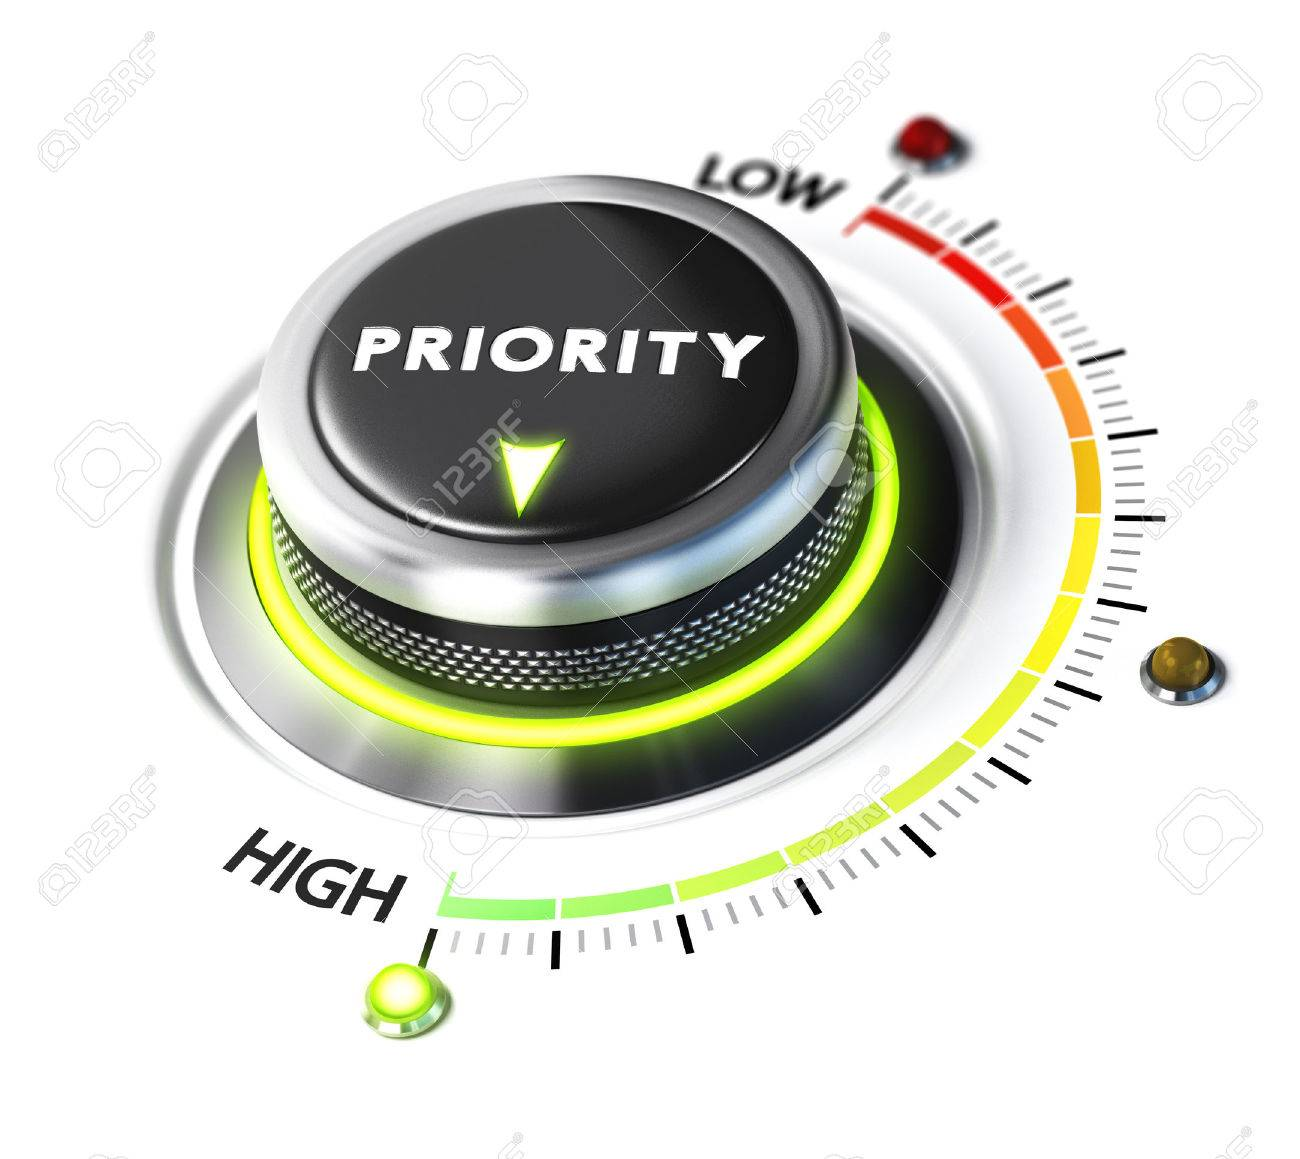 Priority switch button positioned on highest level, white background and green light. Conceptual image for illustration of setting priorities and time management. Stock Illustration - 45578689